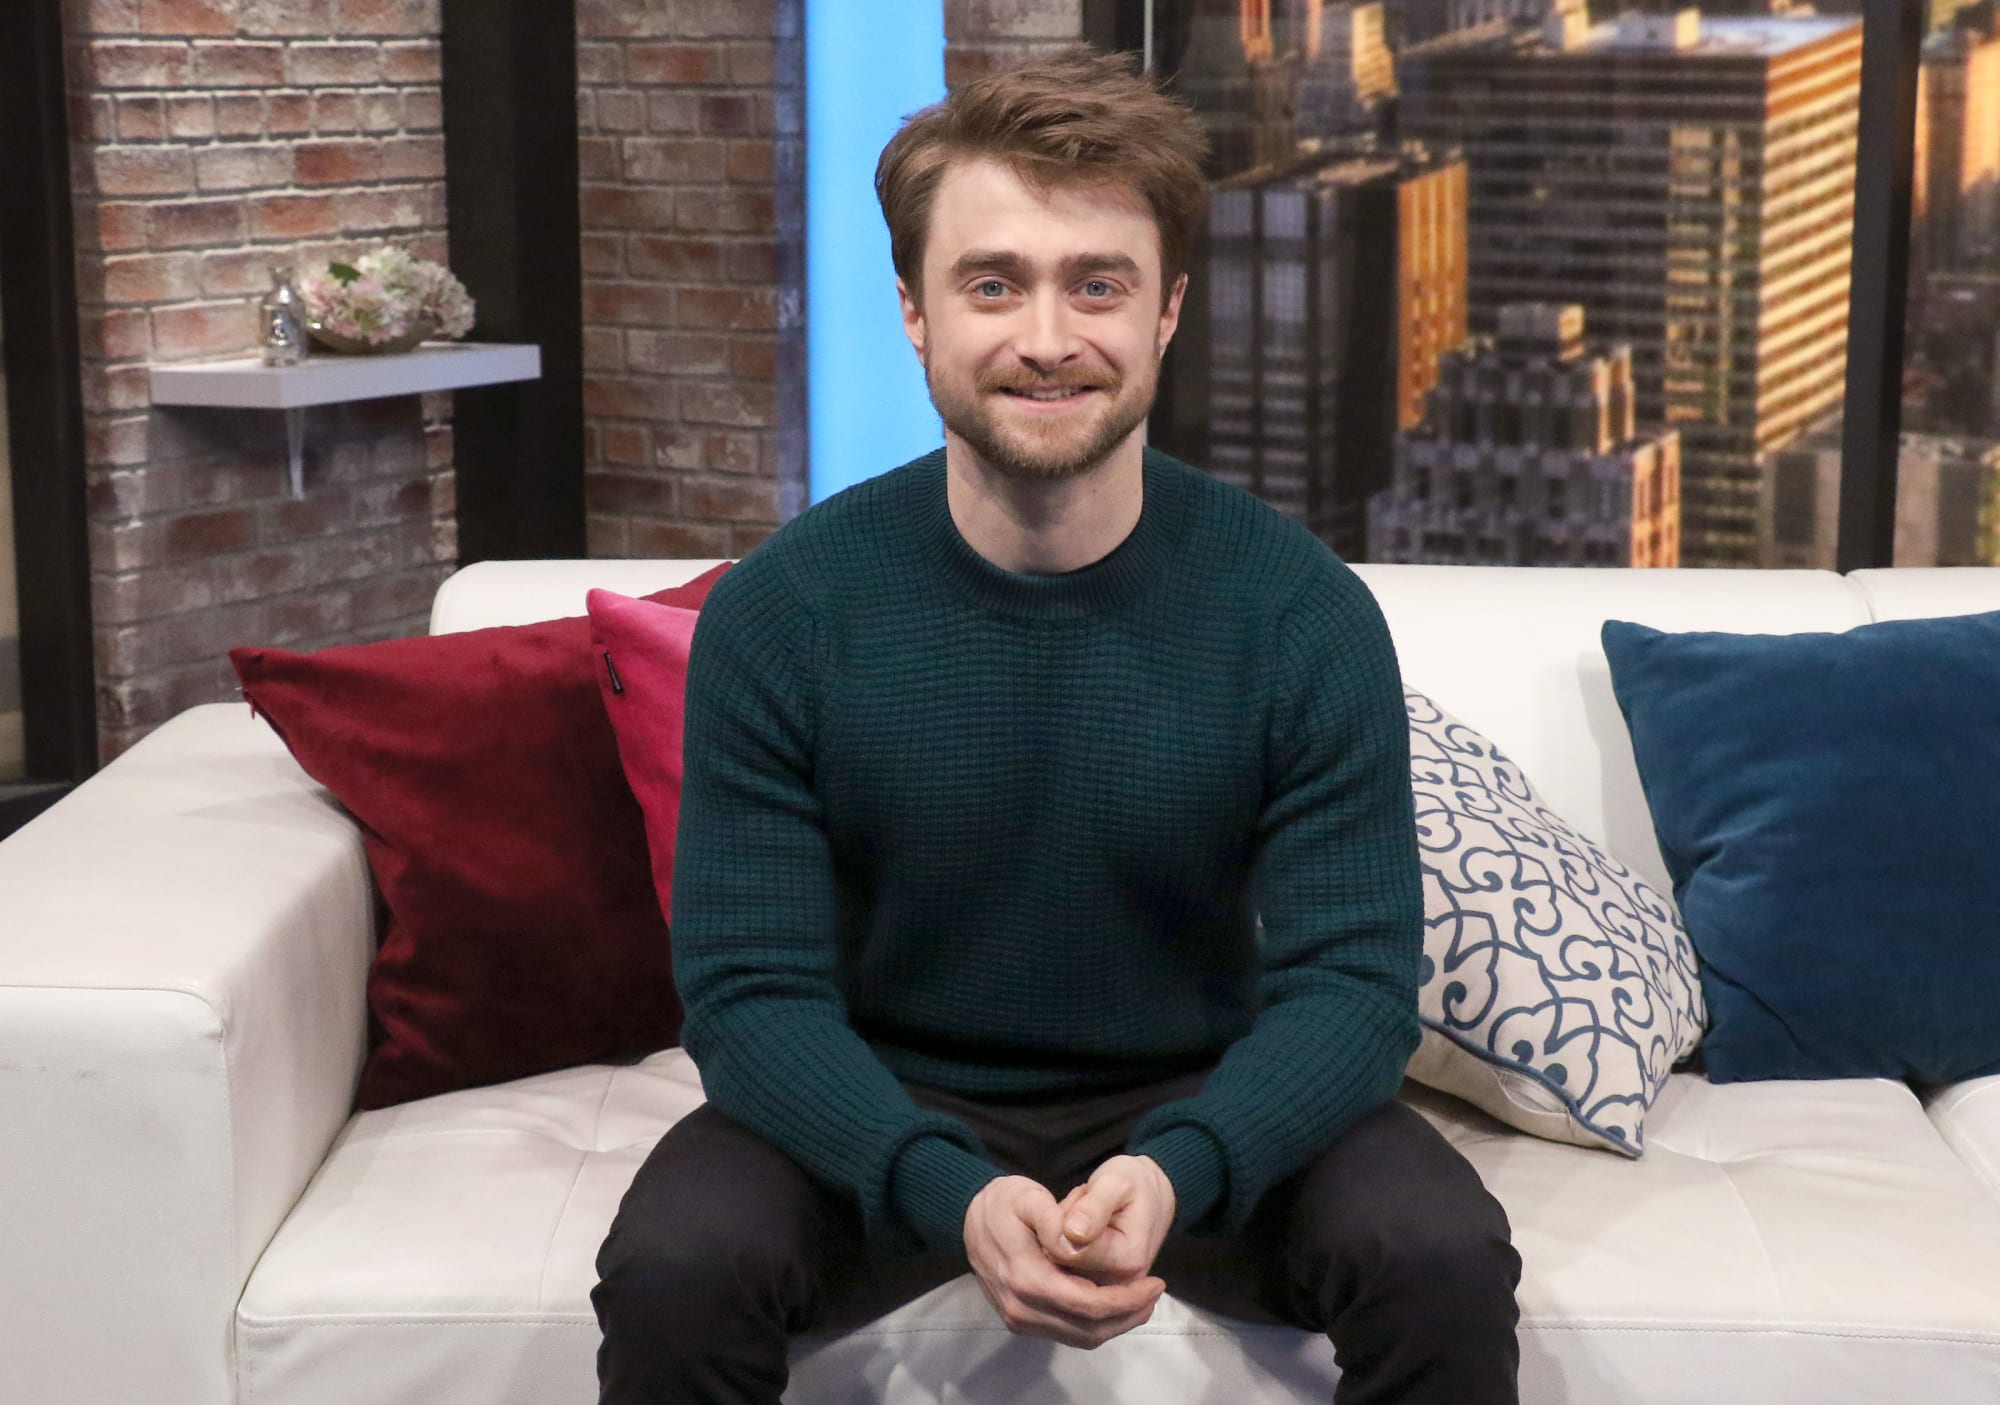 X-Men: Daniel Radcliffe suits up as Wolverine in stunning new image